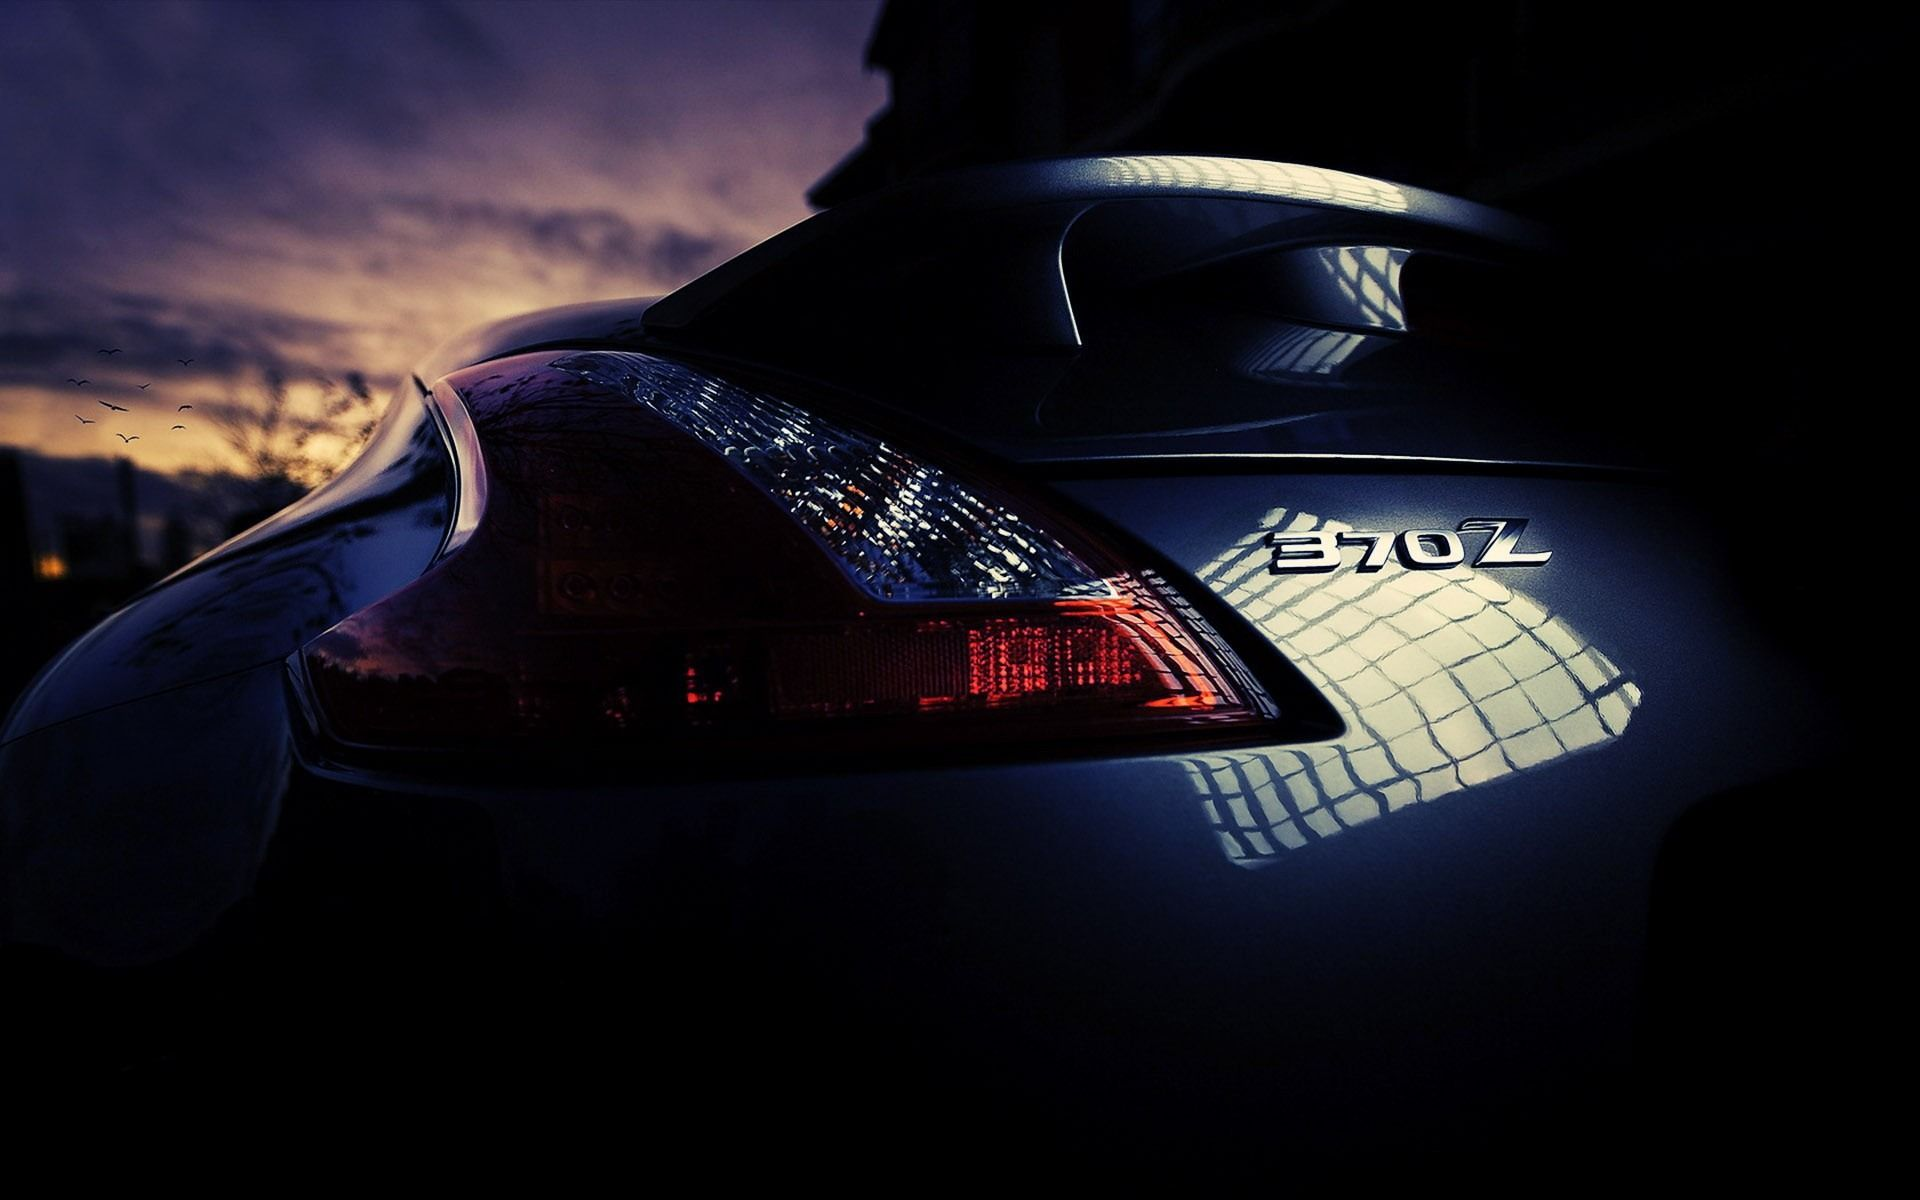 Pin By Hotszots Hd Wallpapers On Vroom Vroom Cars Nissan 370z